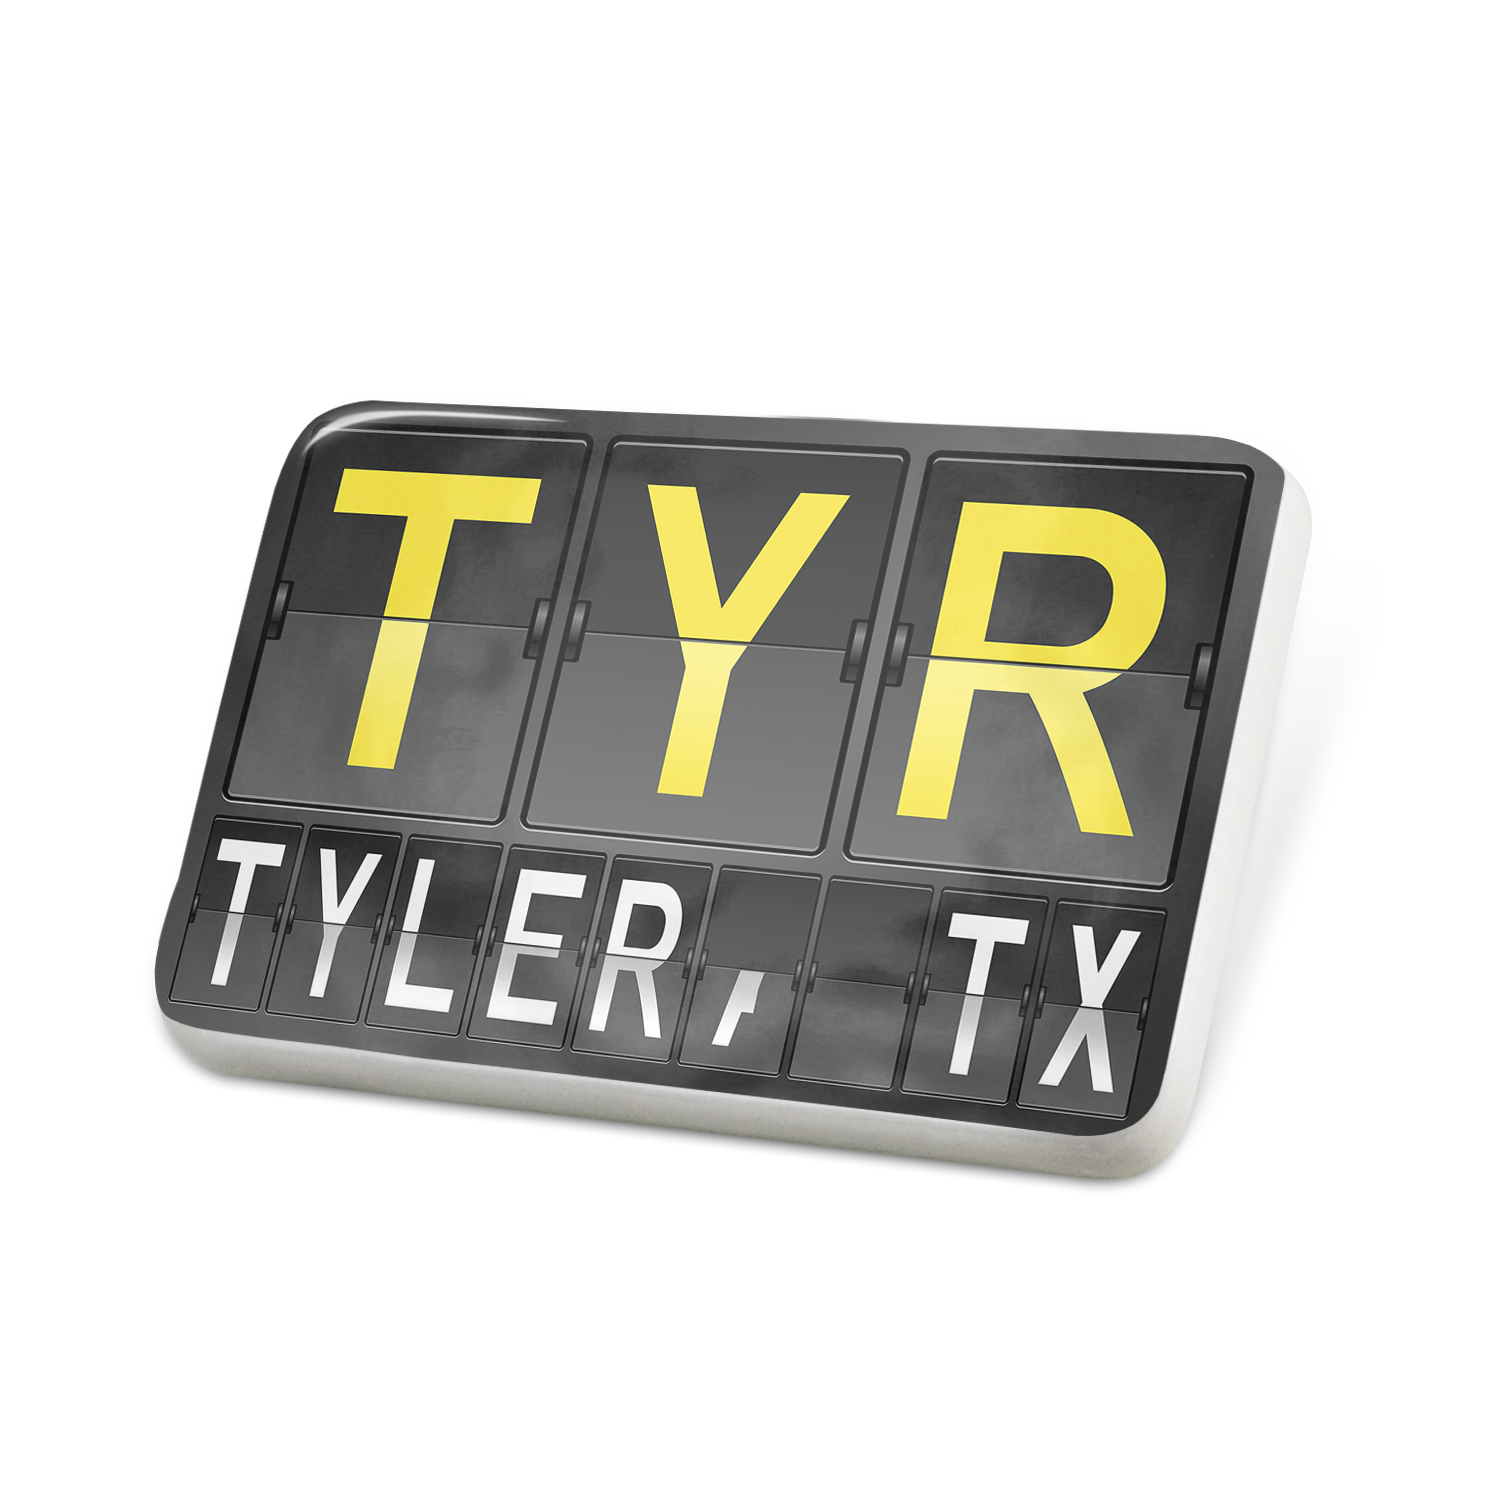 Porcelein Pin TYR Airport Code for Tyler, TX Lapel Badge – NEONBLOND